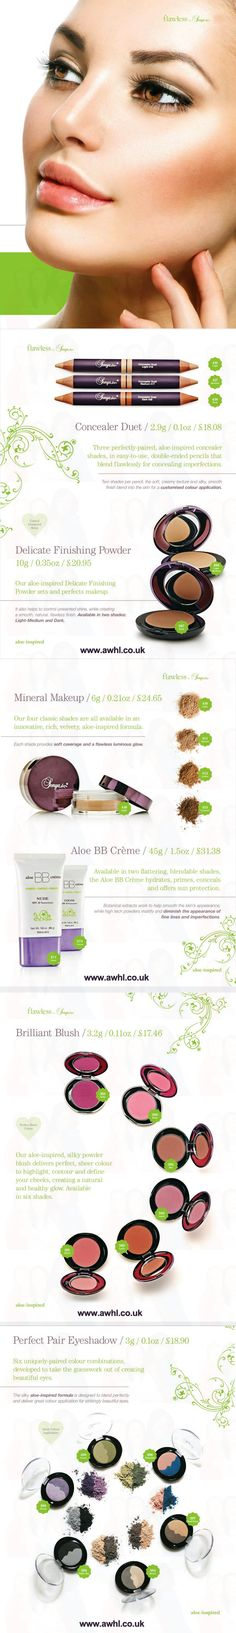 You are Flawless - Infused with the goodness of aloe and the latest innovations that nature and science offer, flawless by Sonya products empower women from around the world to explore and express their individual perception of beauty. http://team4dreams.flp.com/